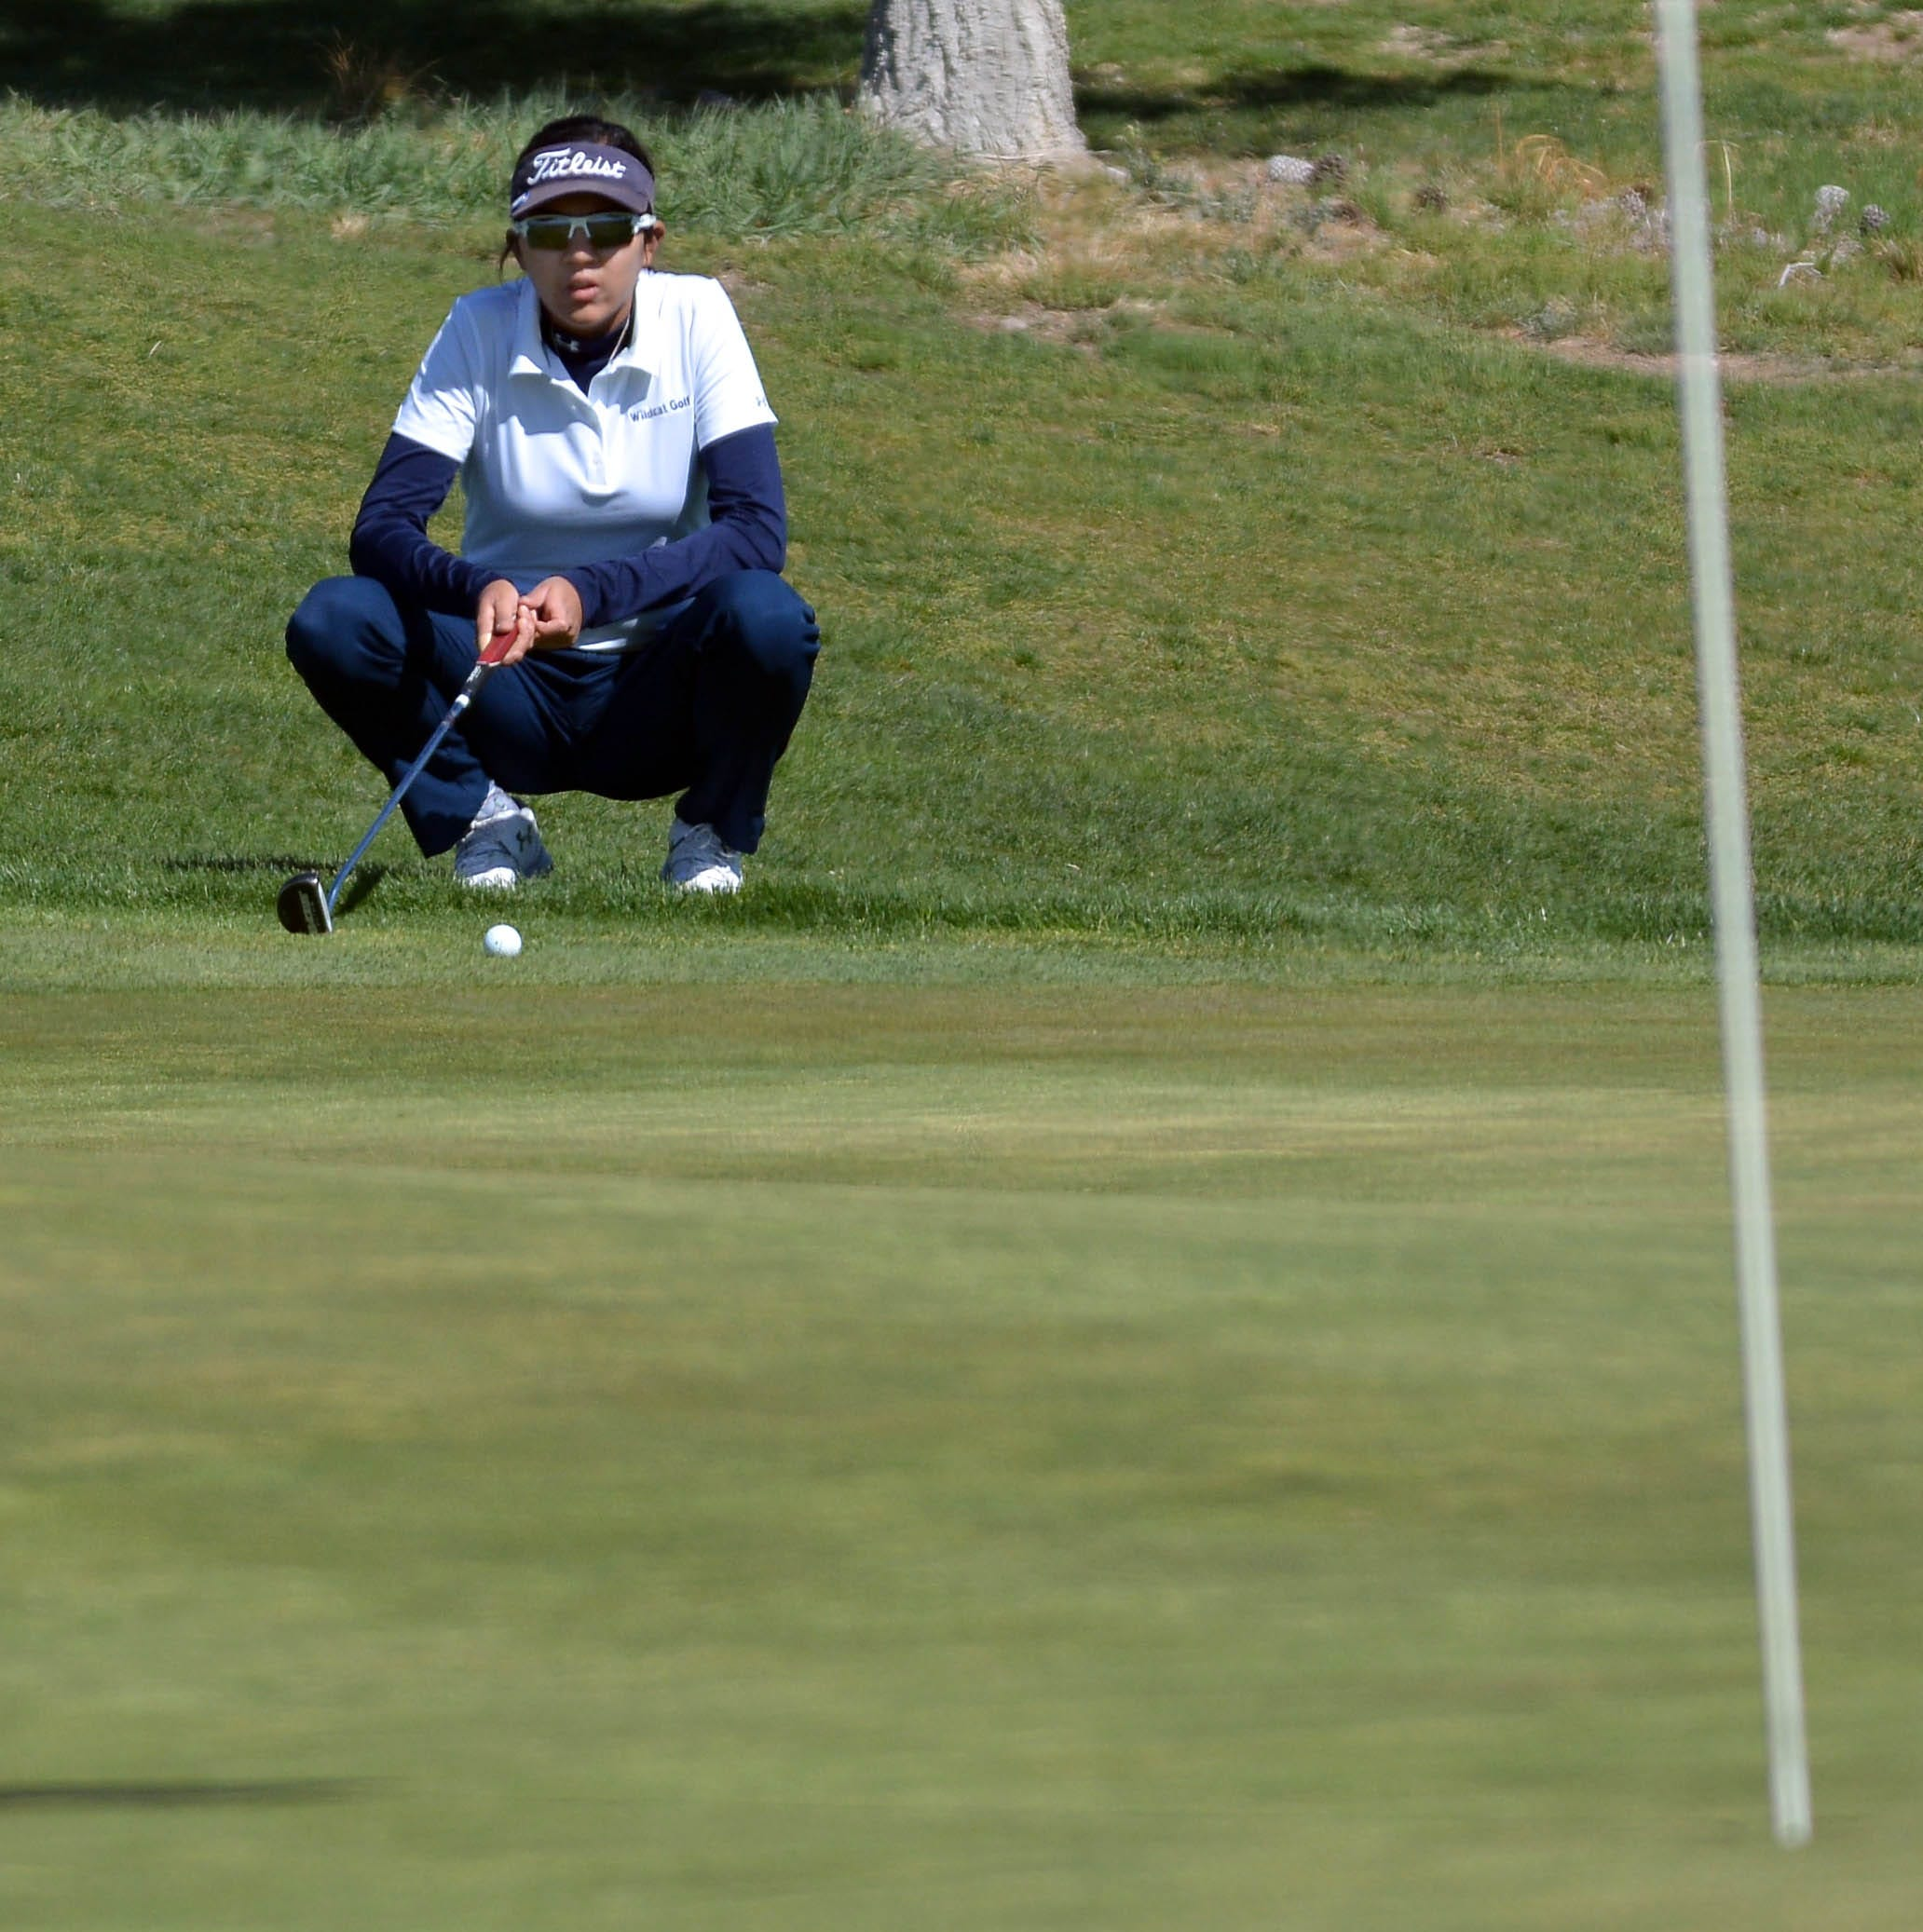 Deming High golfers play home course Thursday in Deming Invitational